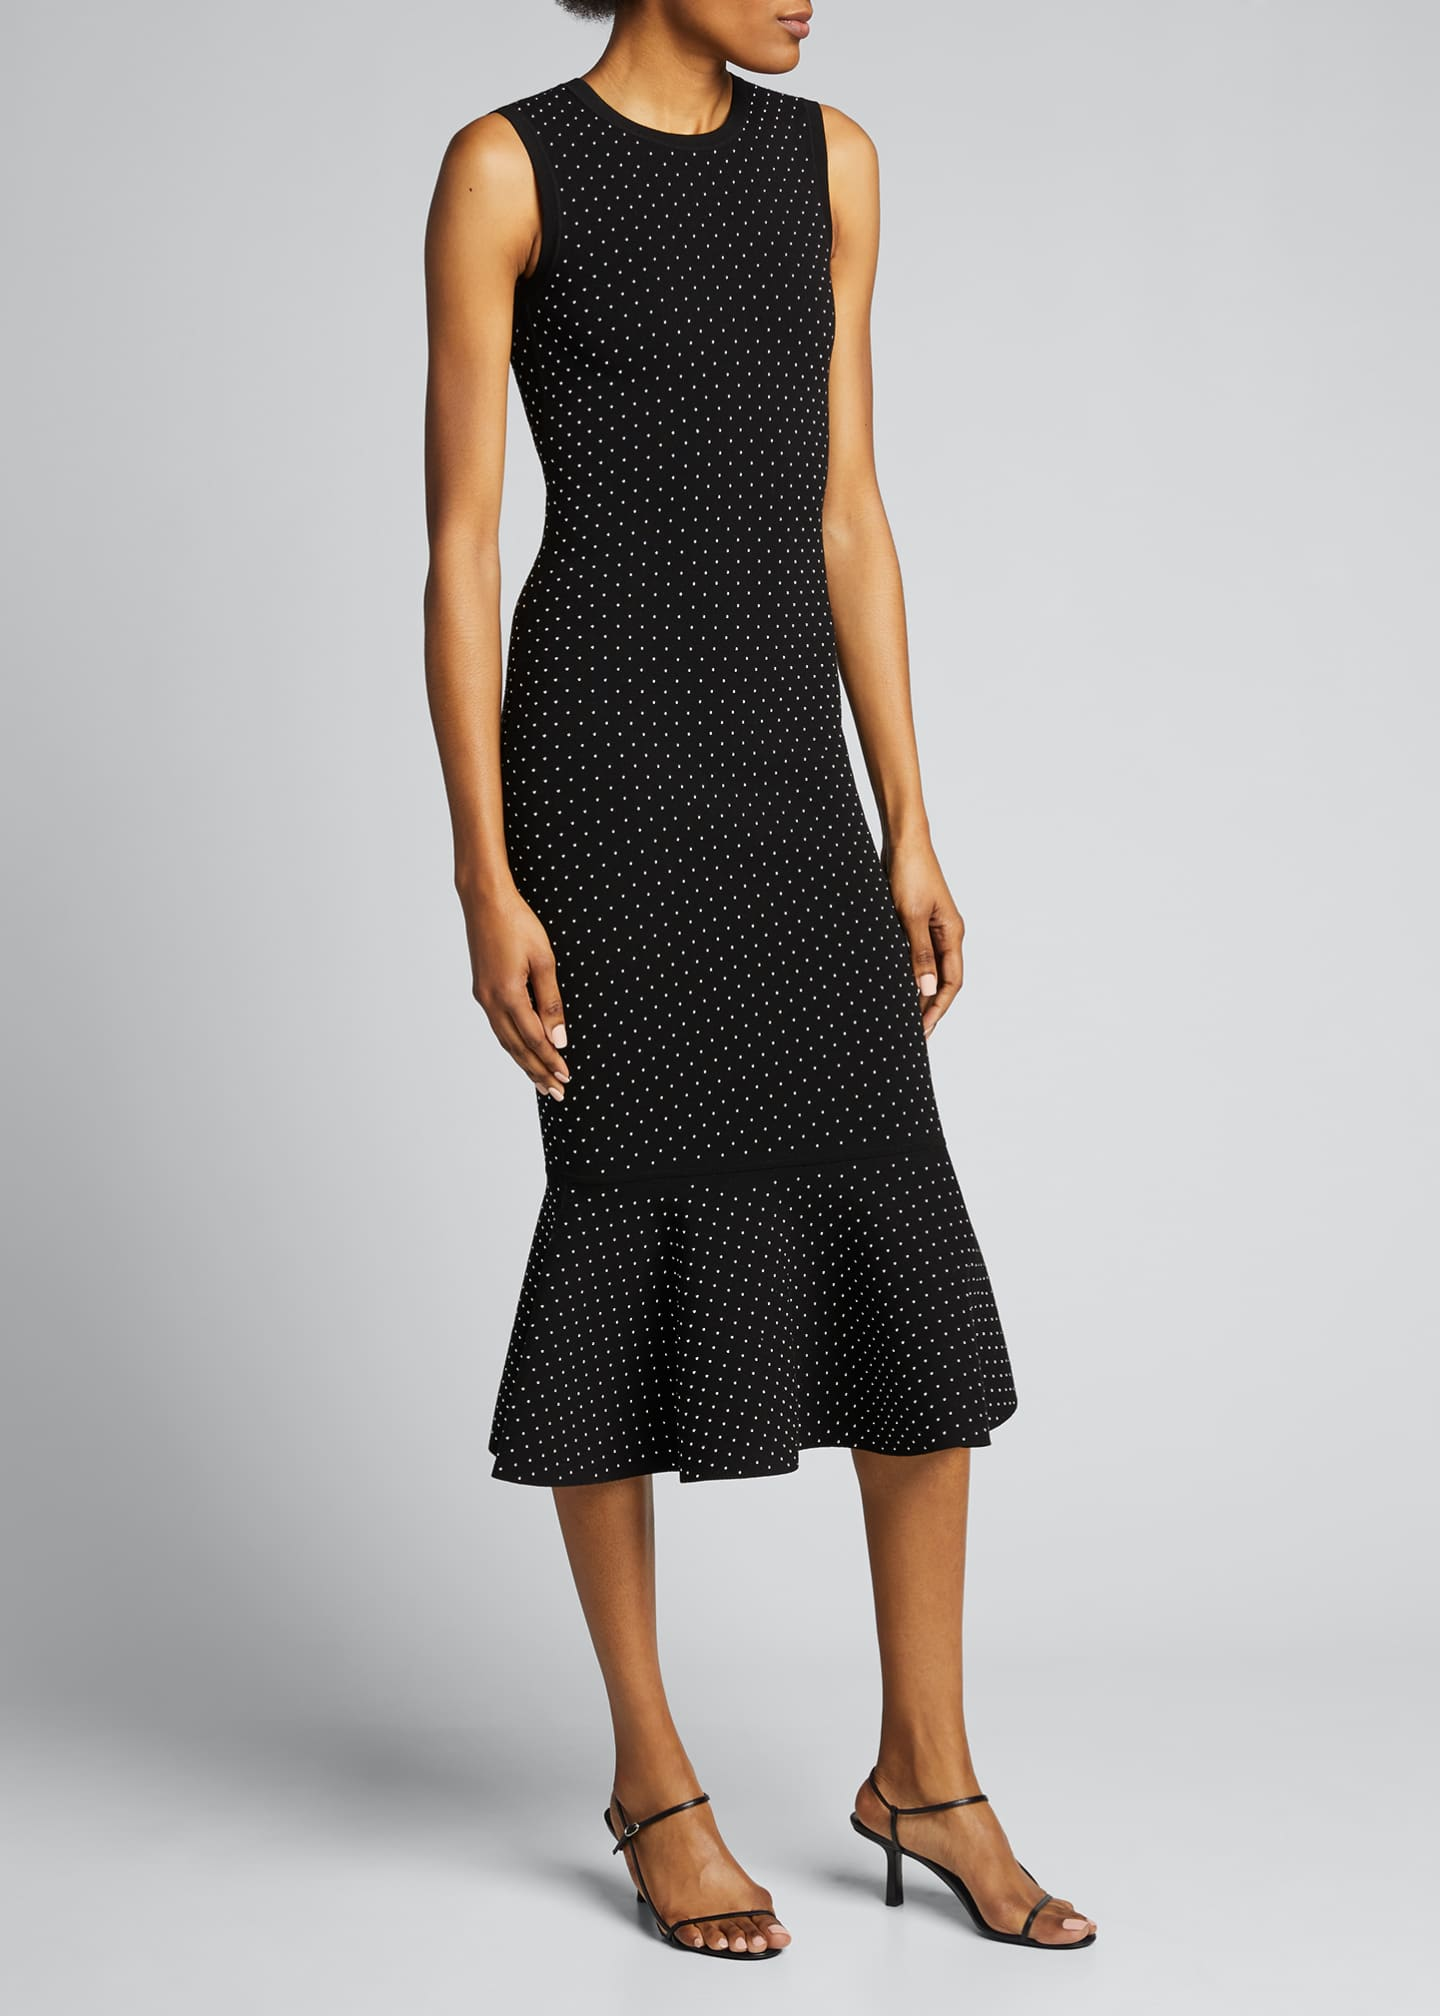 Image 3 of 5: Studded Double-Knit Mermaid Midi Dress